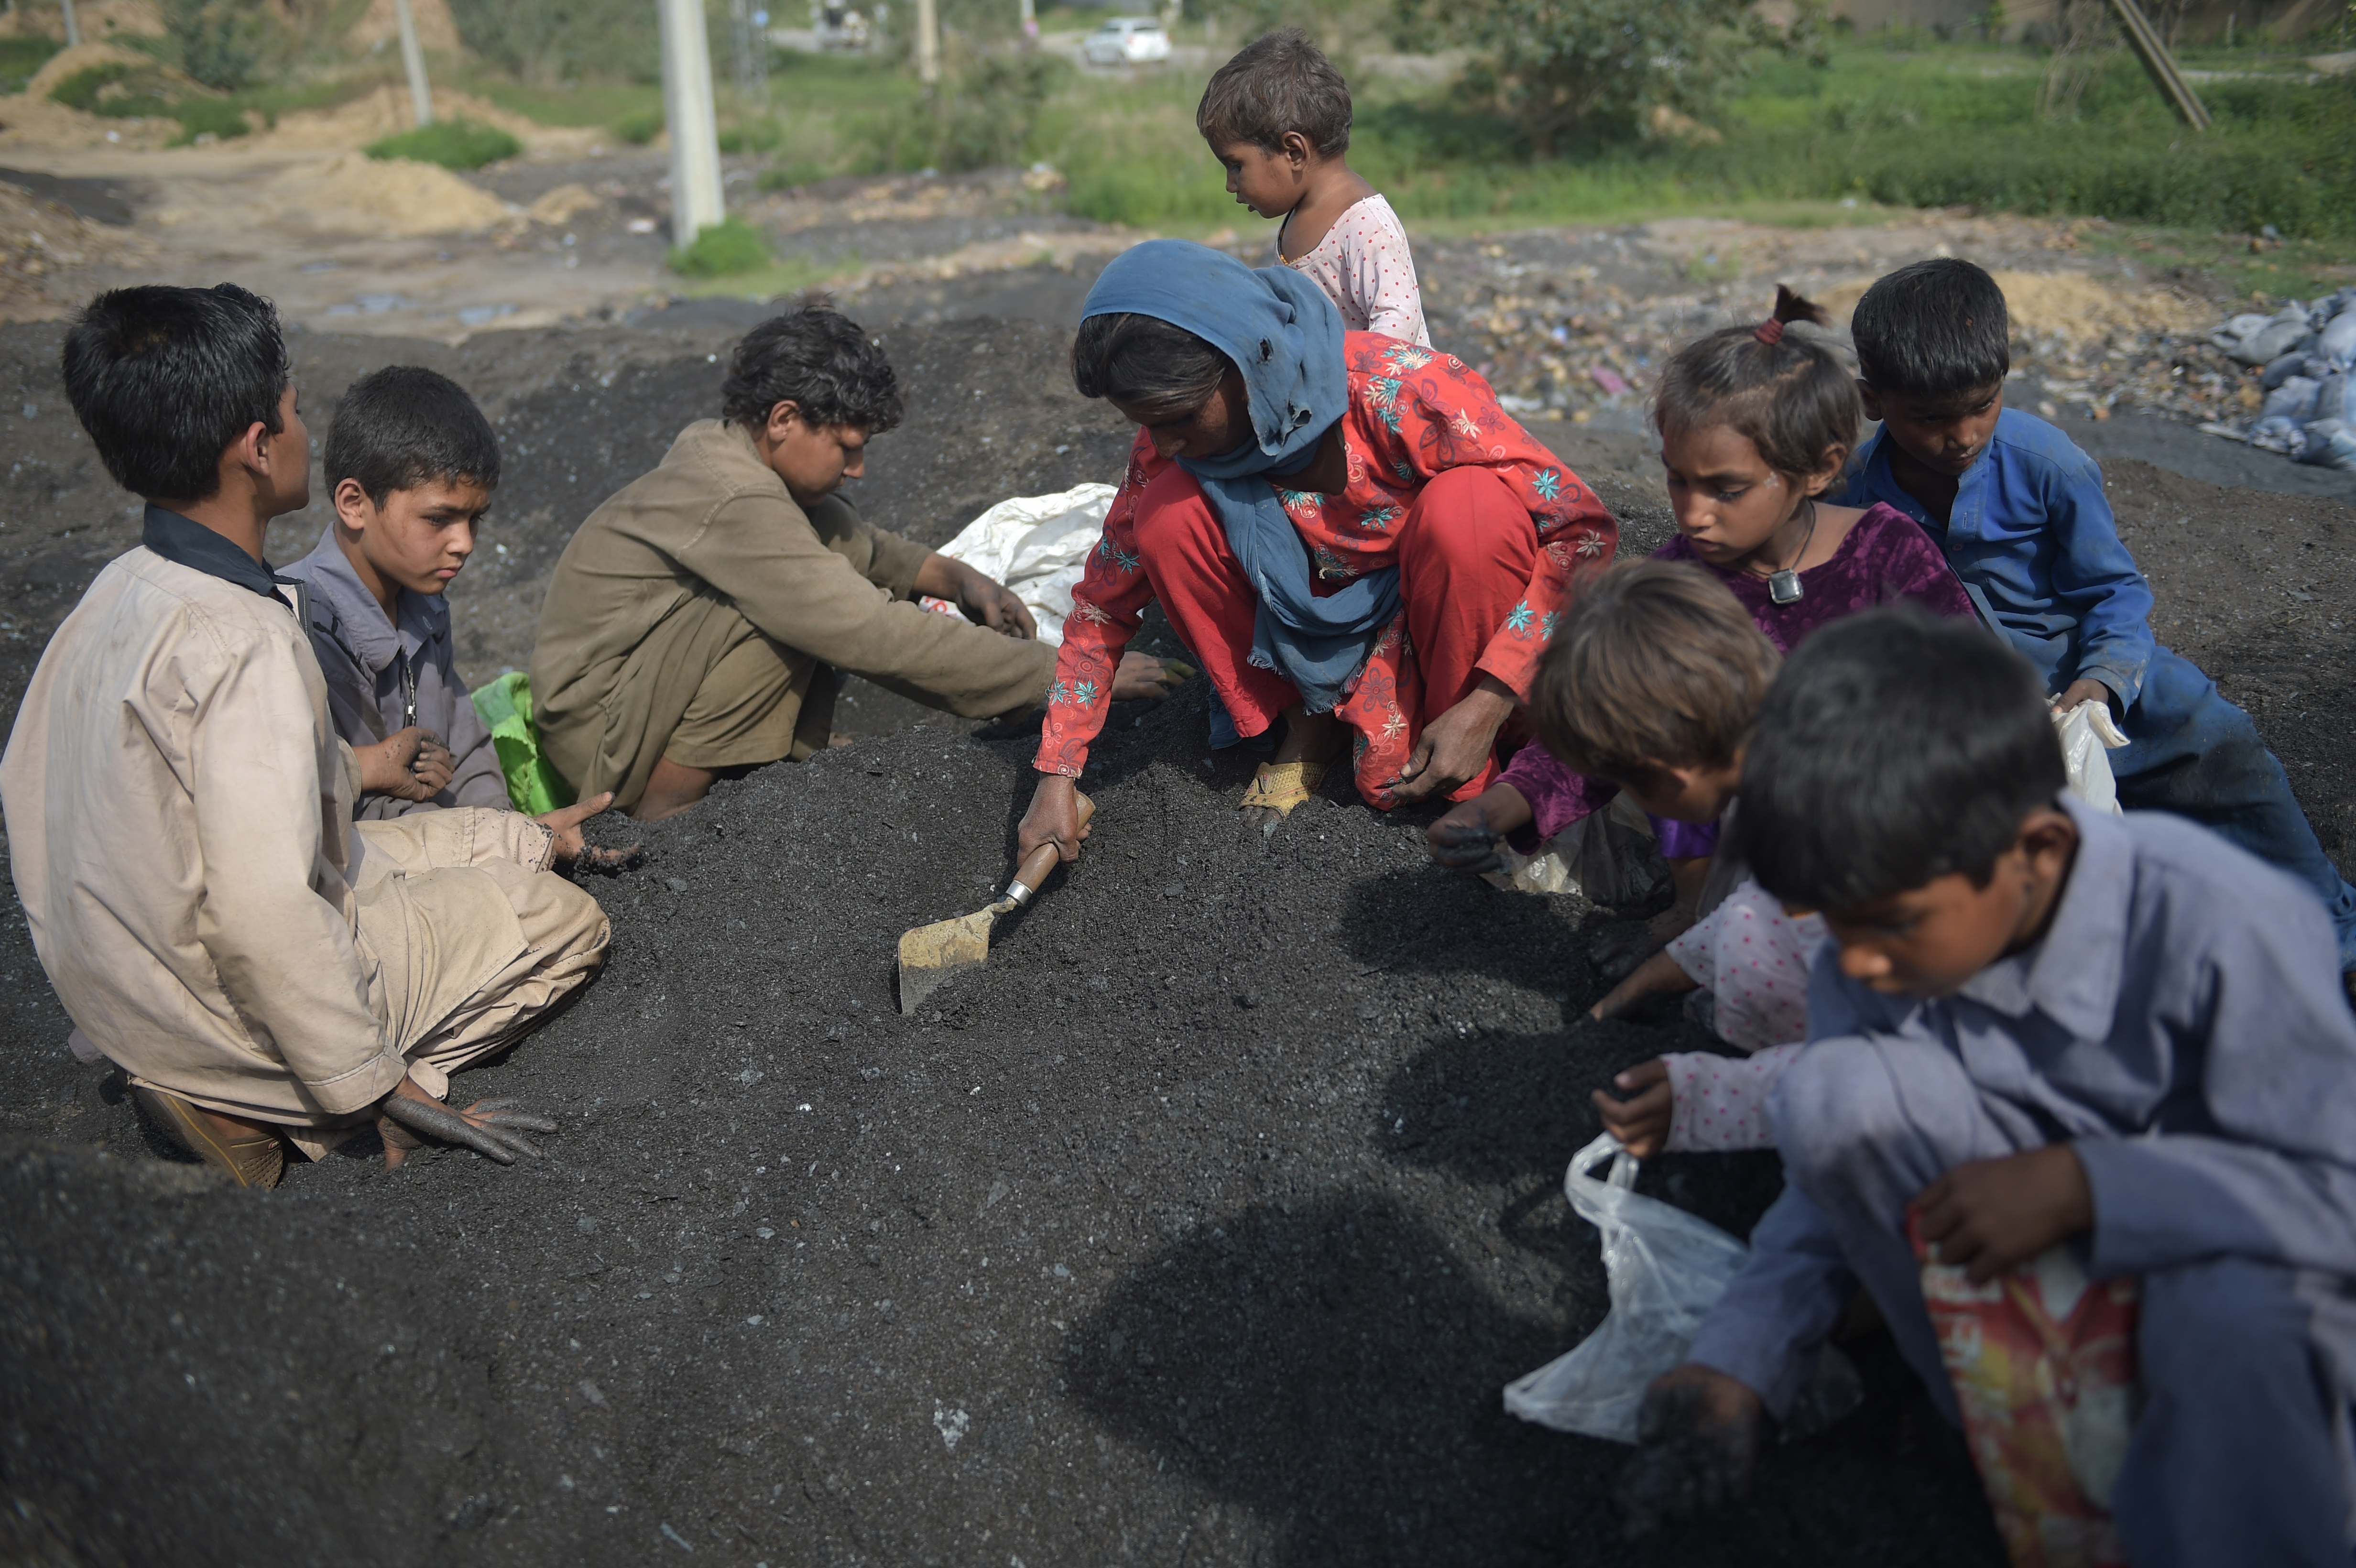 Pakistani authorities try to curtail rapid population growth